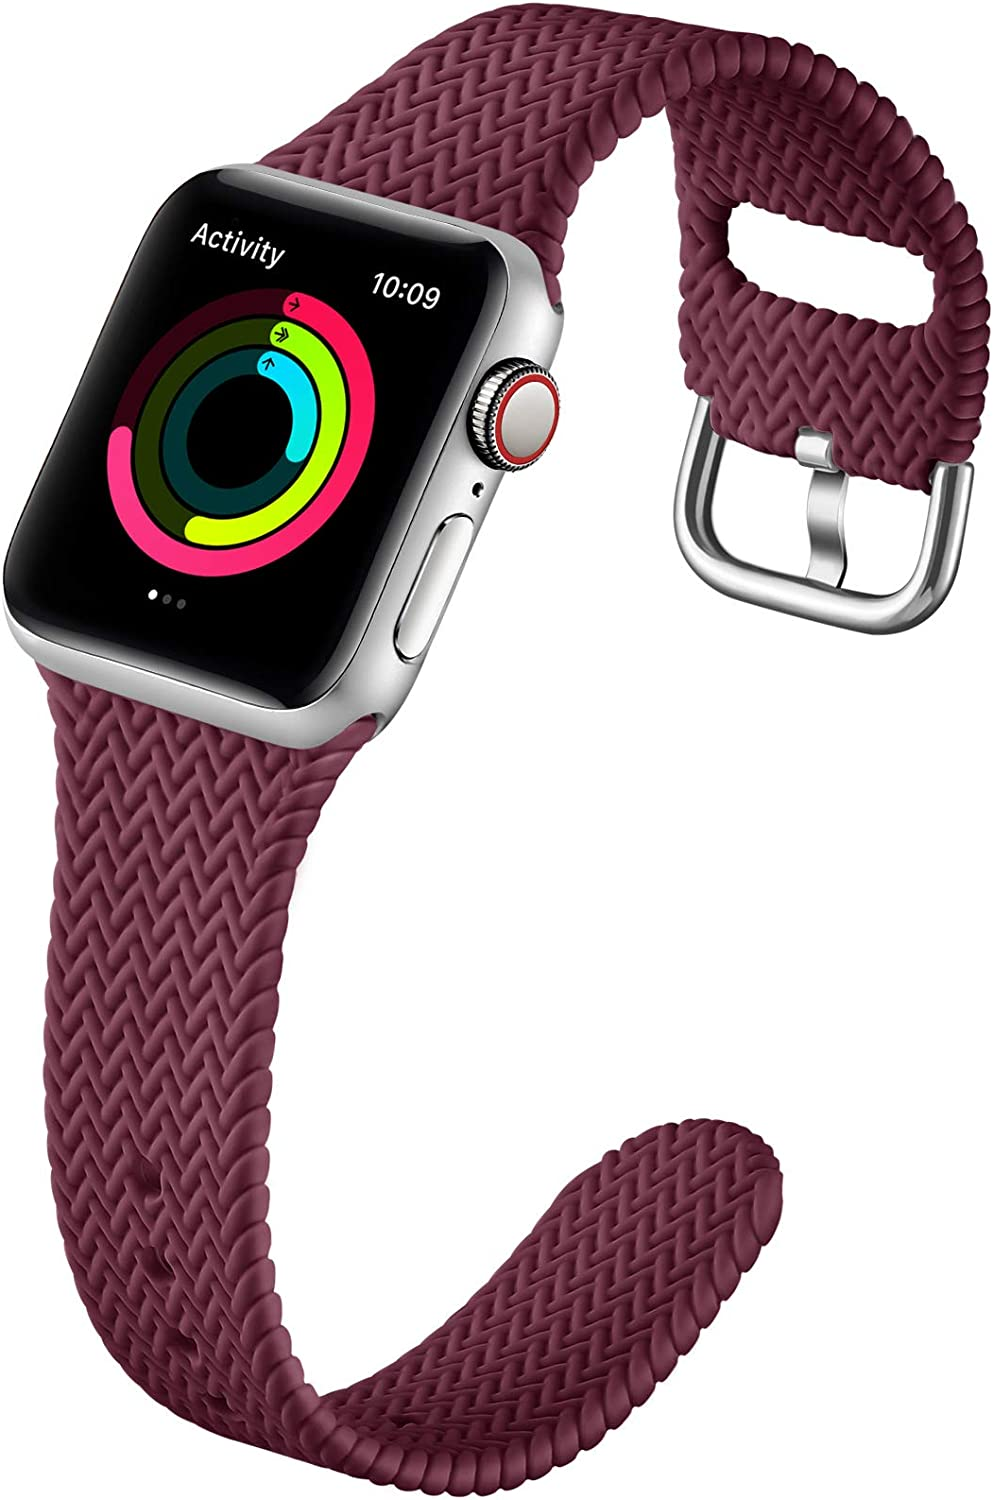 GEAK Compatible with Apple Watch Band 38mm 40mm Women Men Series 6, Comfortable Flexible Textured Weave Pattern Sport Wristband for Apple Watch SE Series 6 5 4 3 2 1, Wine Red